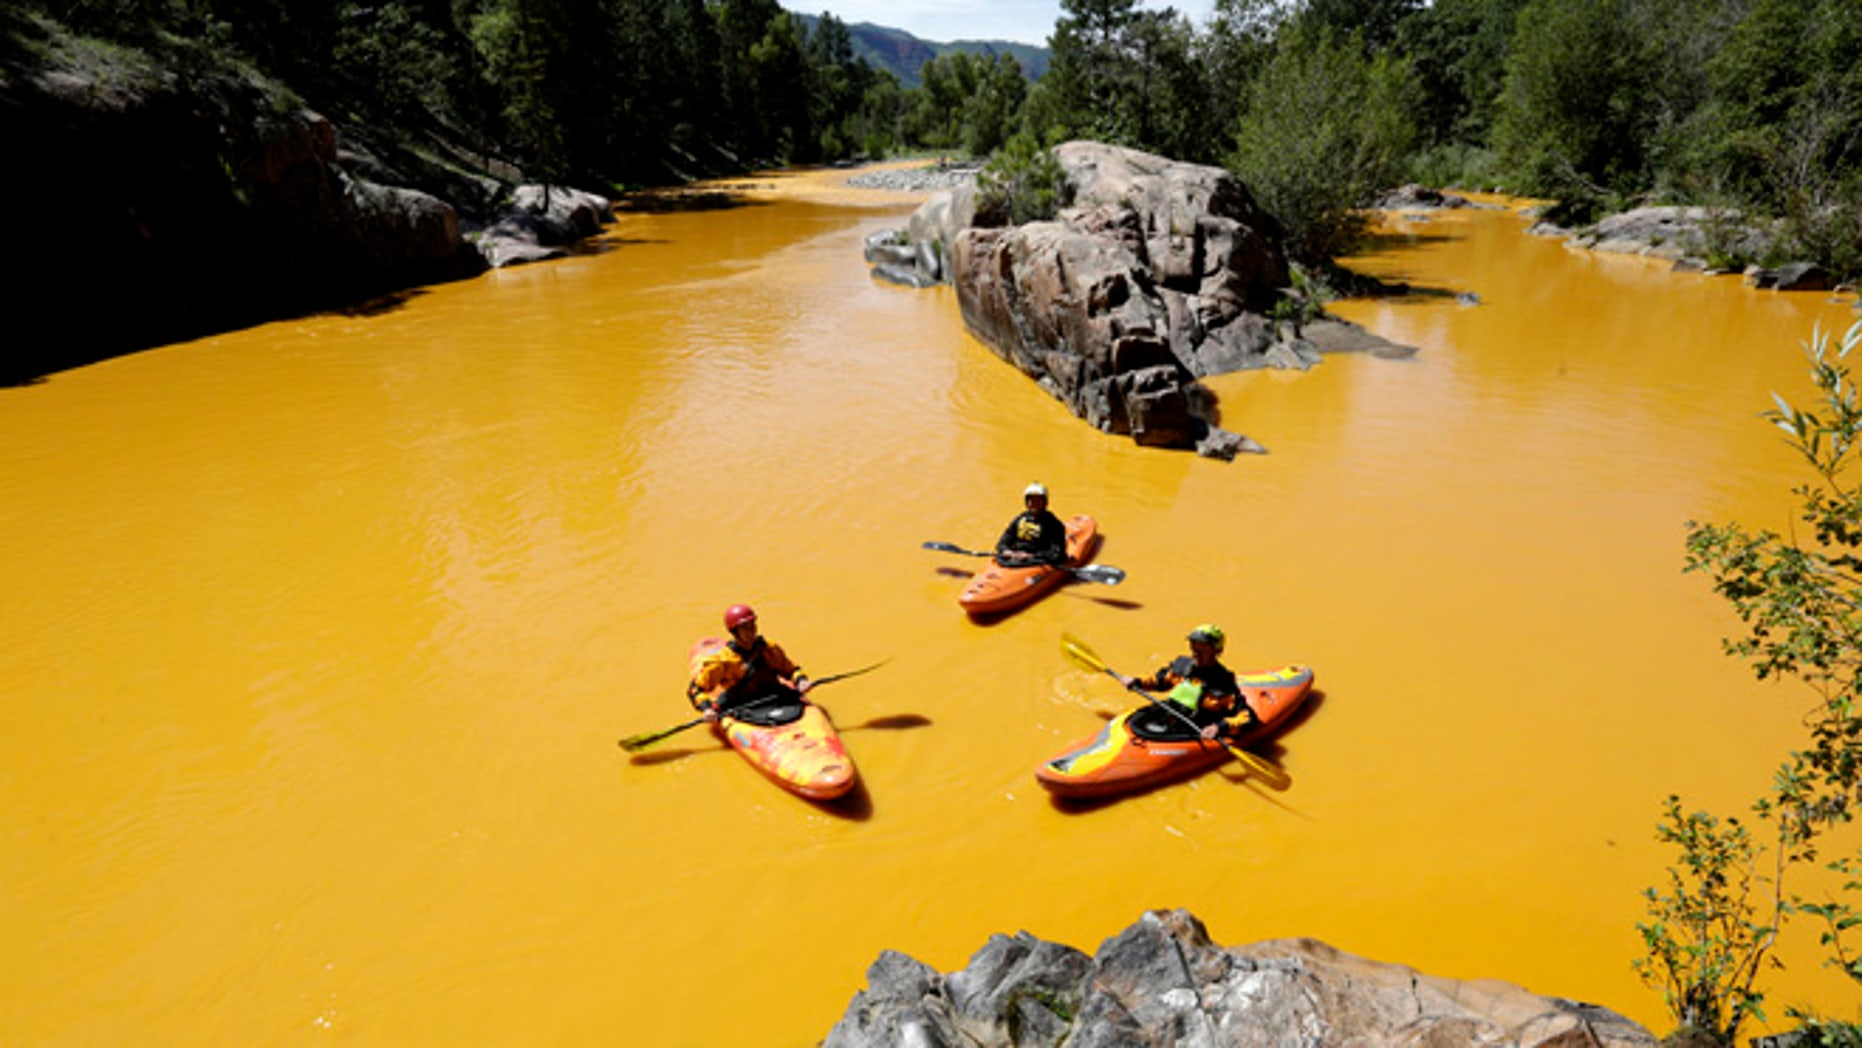 FILE: Aug. 6, 2015: Kayaker in the Animas River near Durango, Colo., in water colored yellow from a mine waste spill.